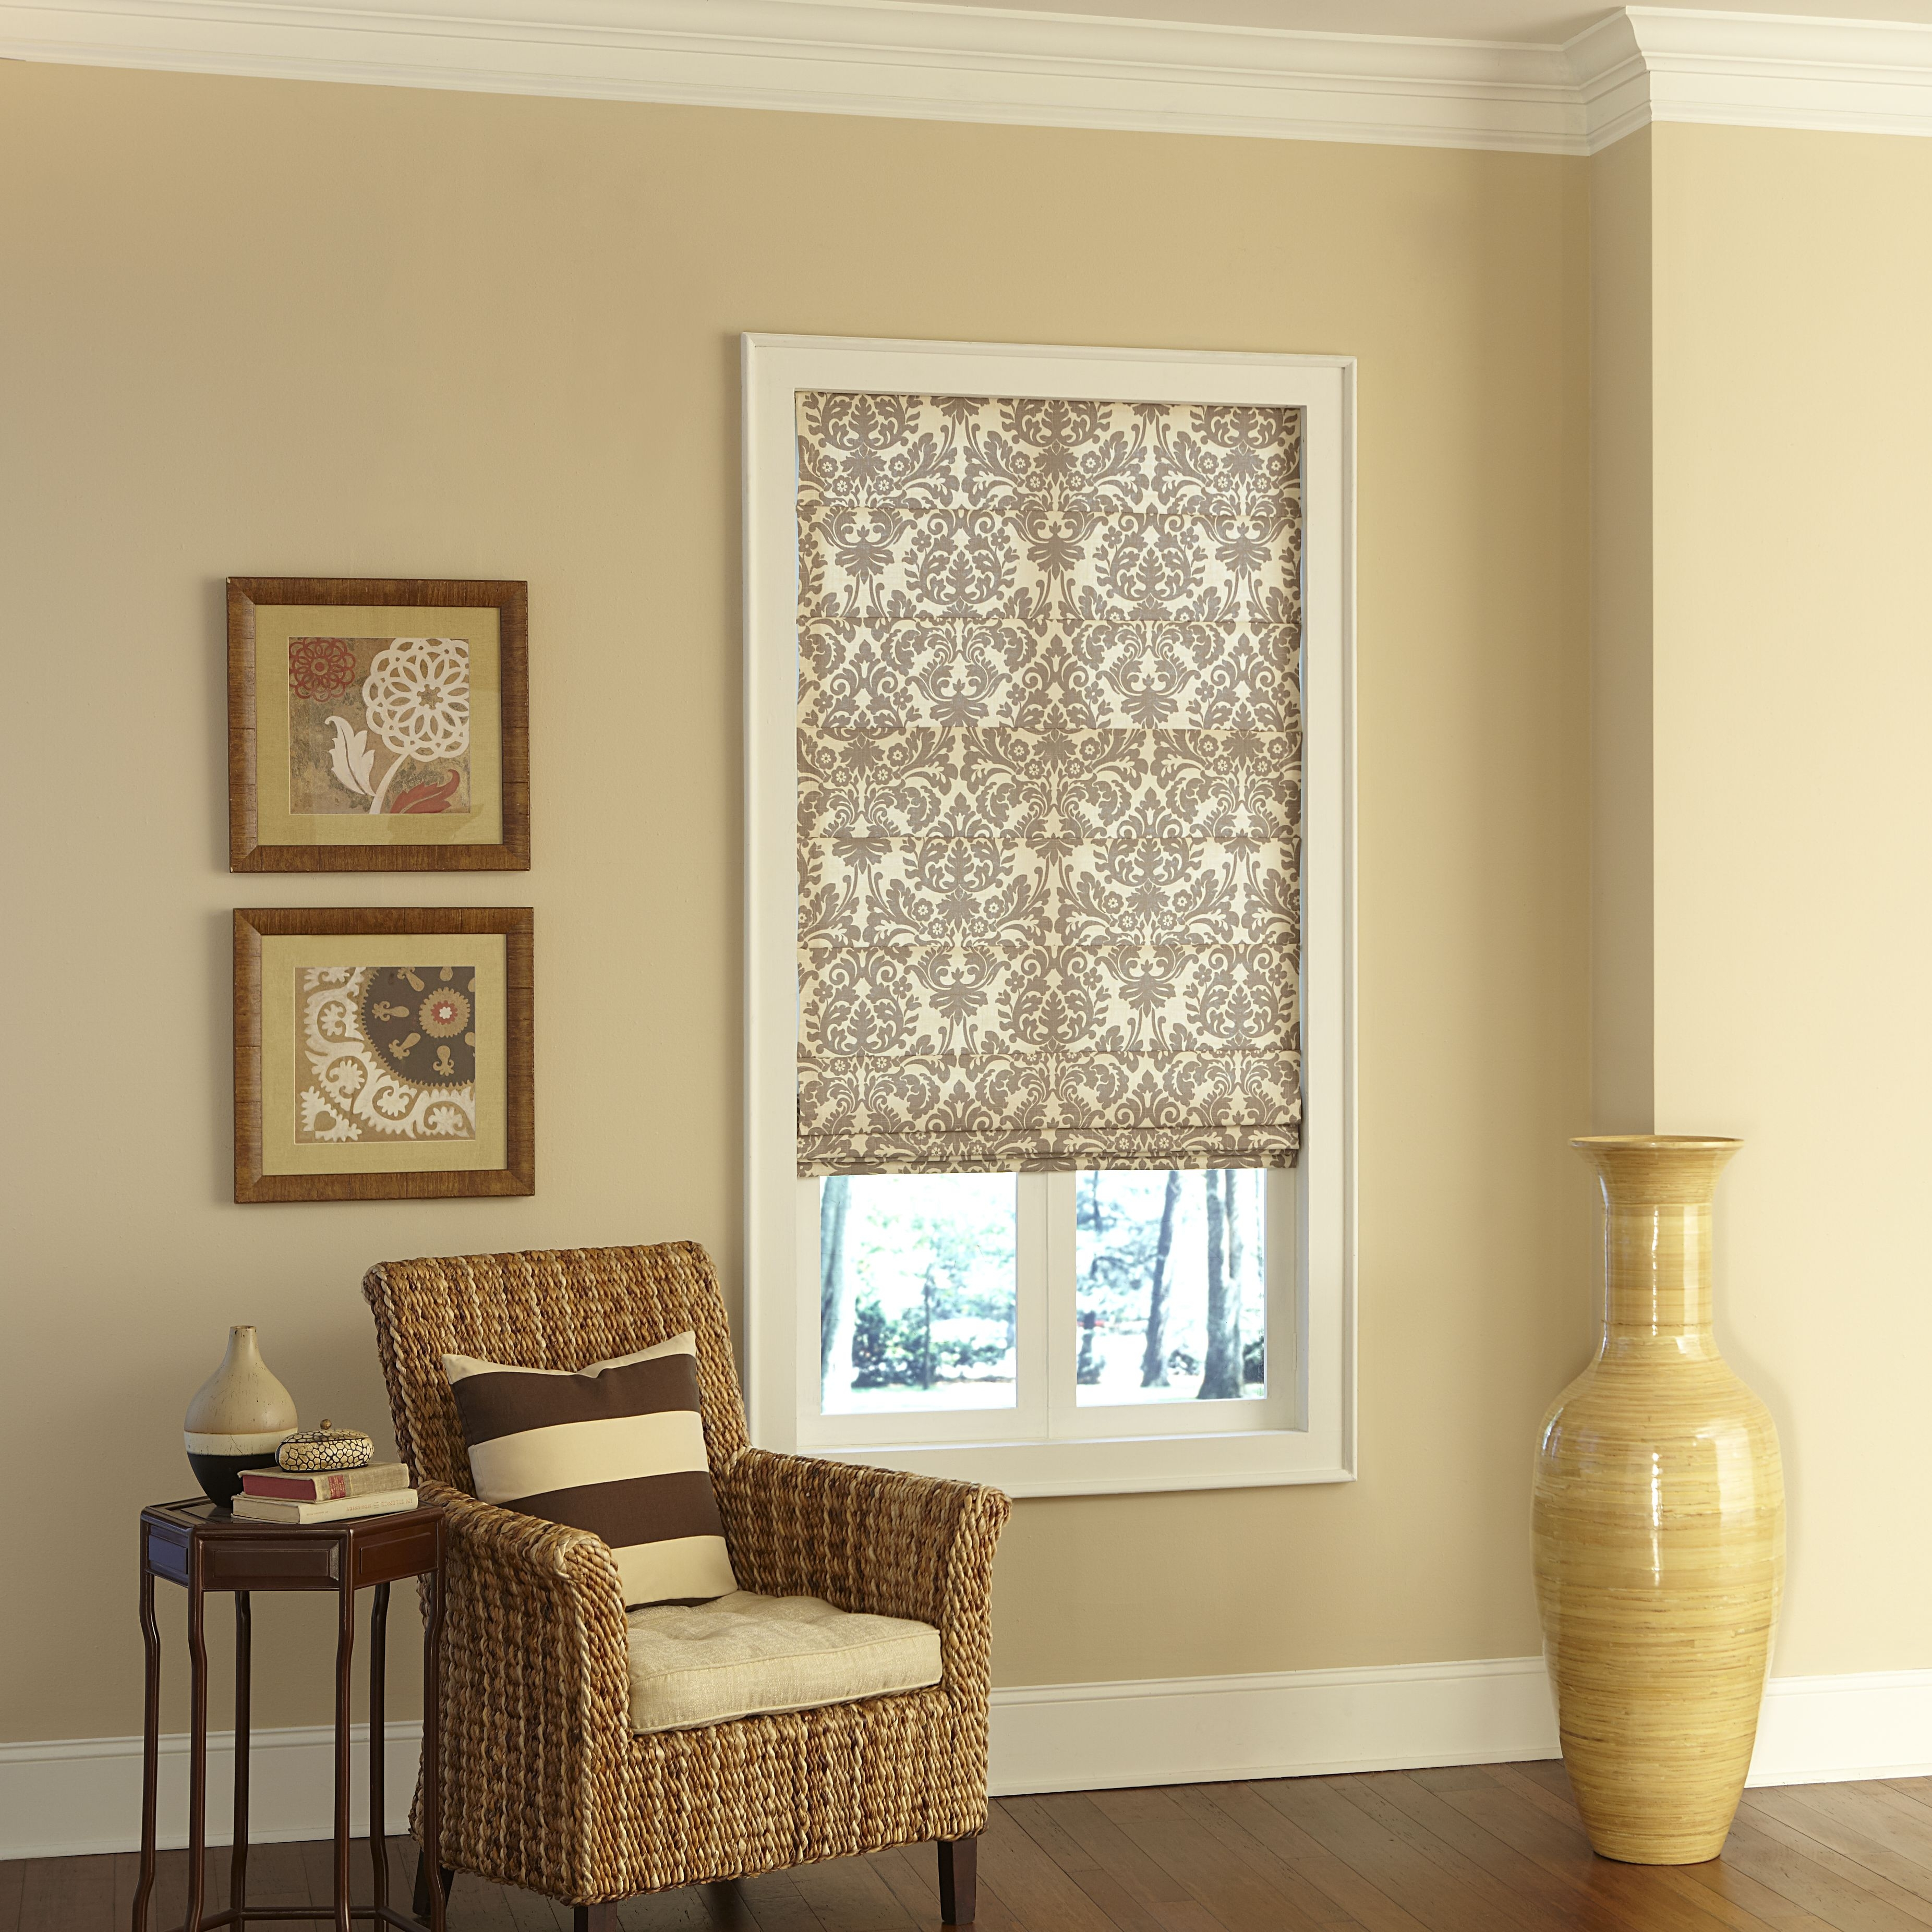 Classic Roman Shade Photo Gallery Blinds In Cotton Blinds (Image 6 of 15)